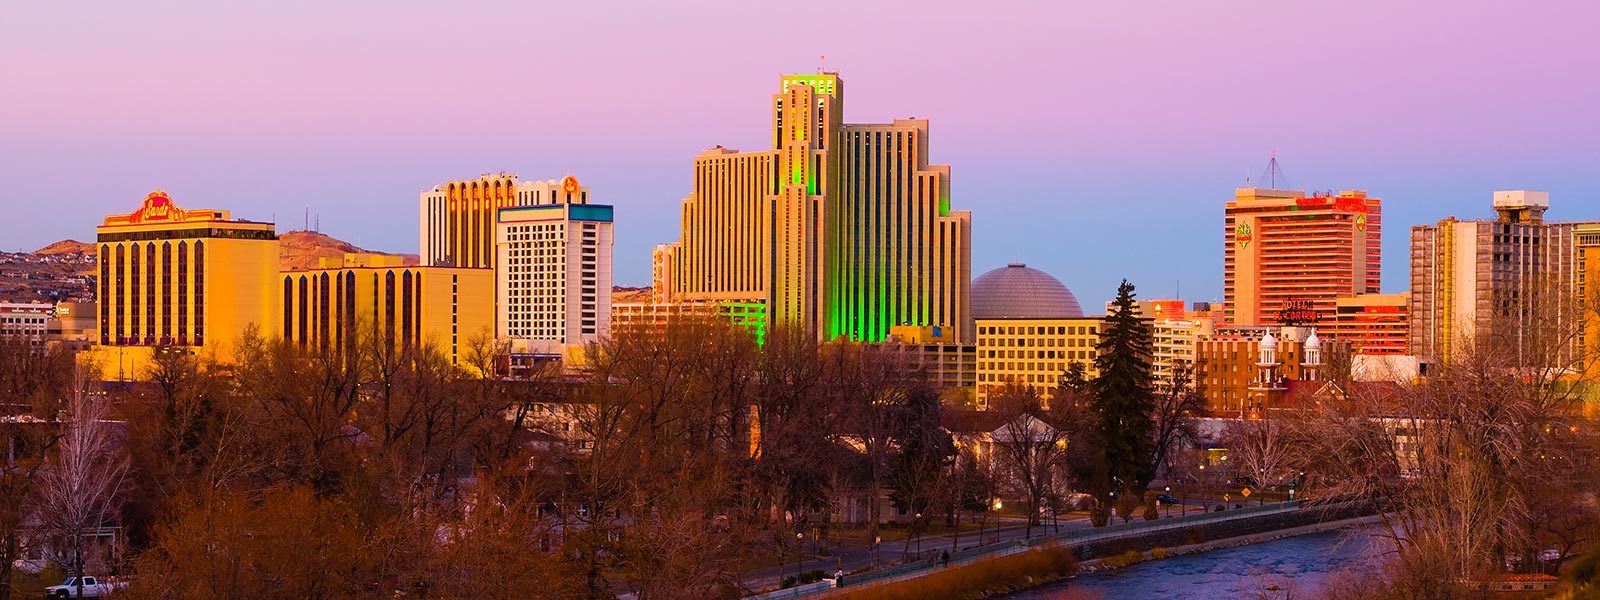 Reno, Nevada skyline at sunset